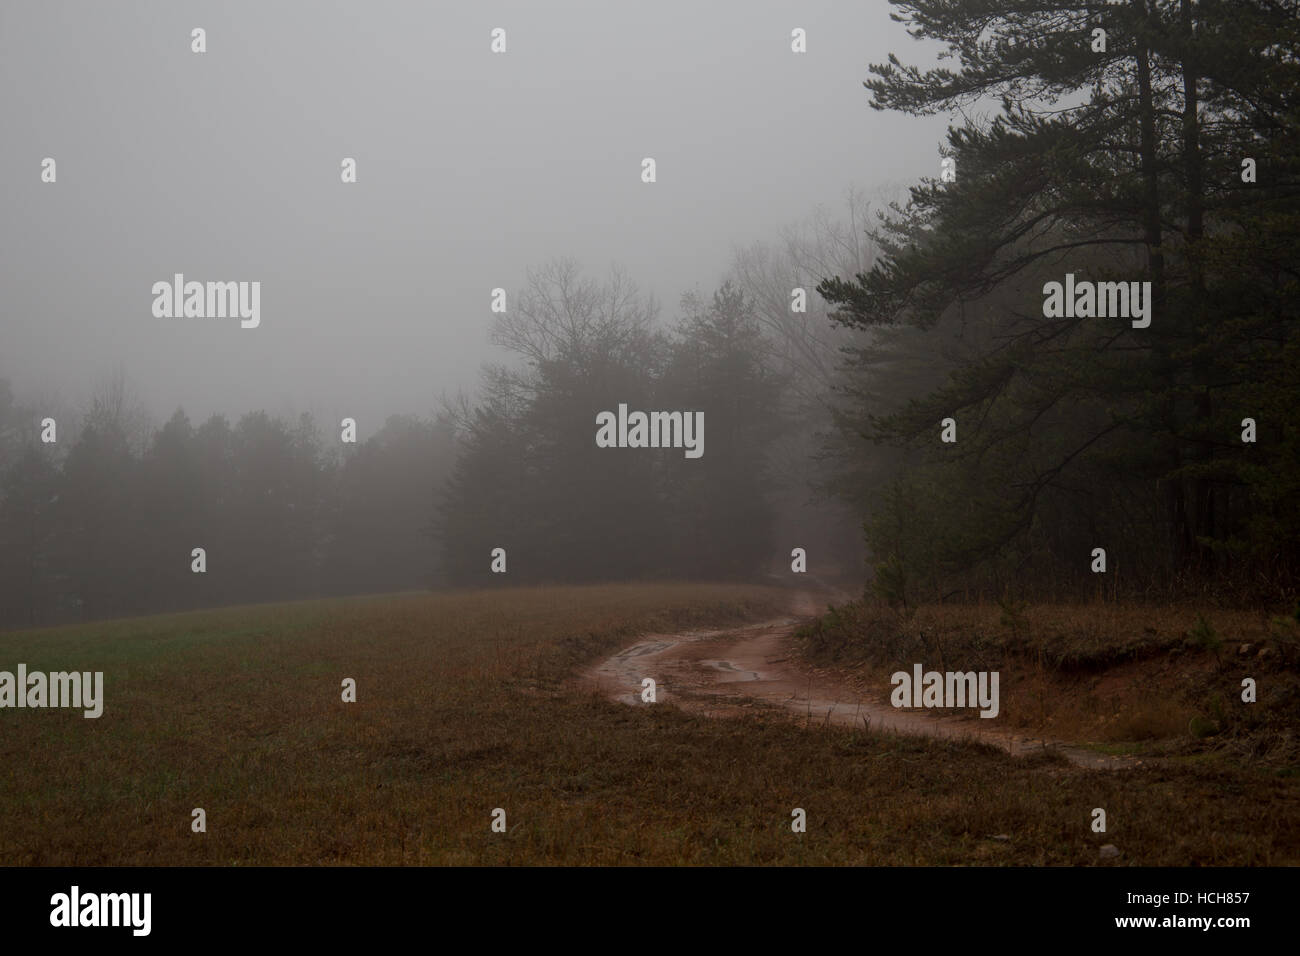 Muddy dirt road leading to the woods in mist - Stock Image